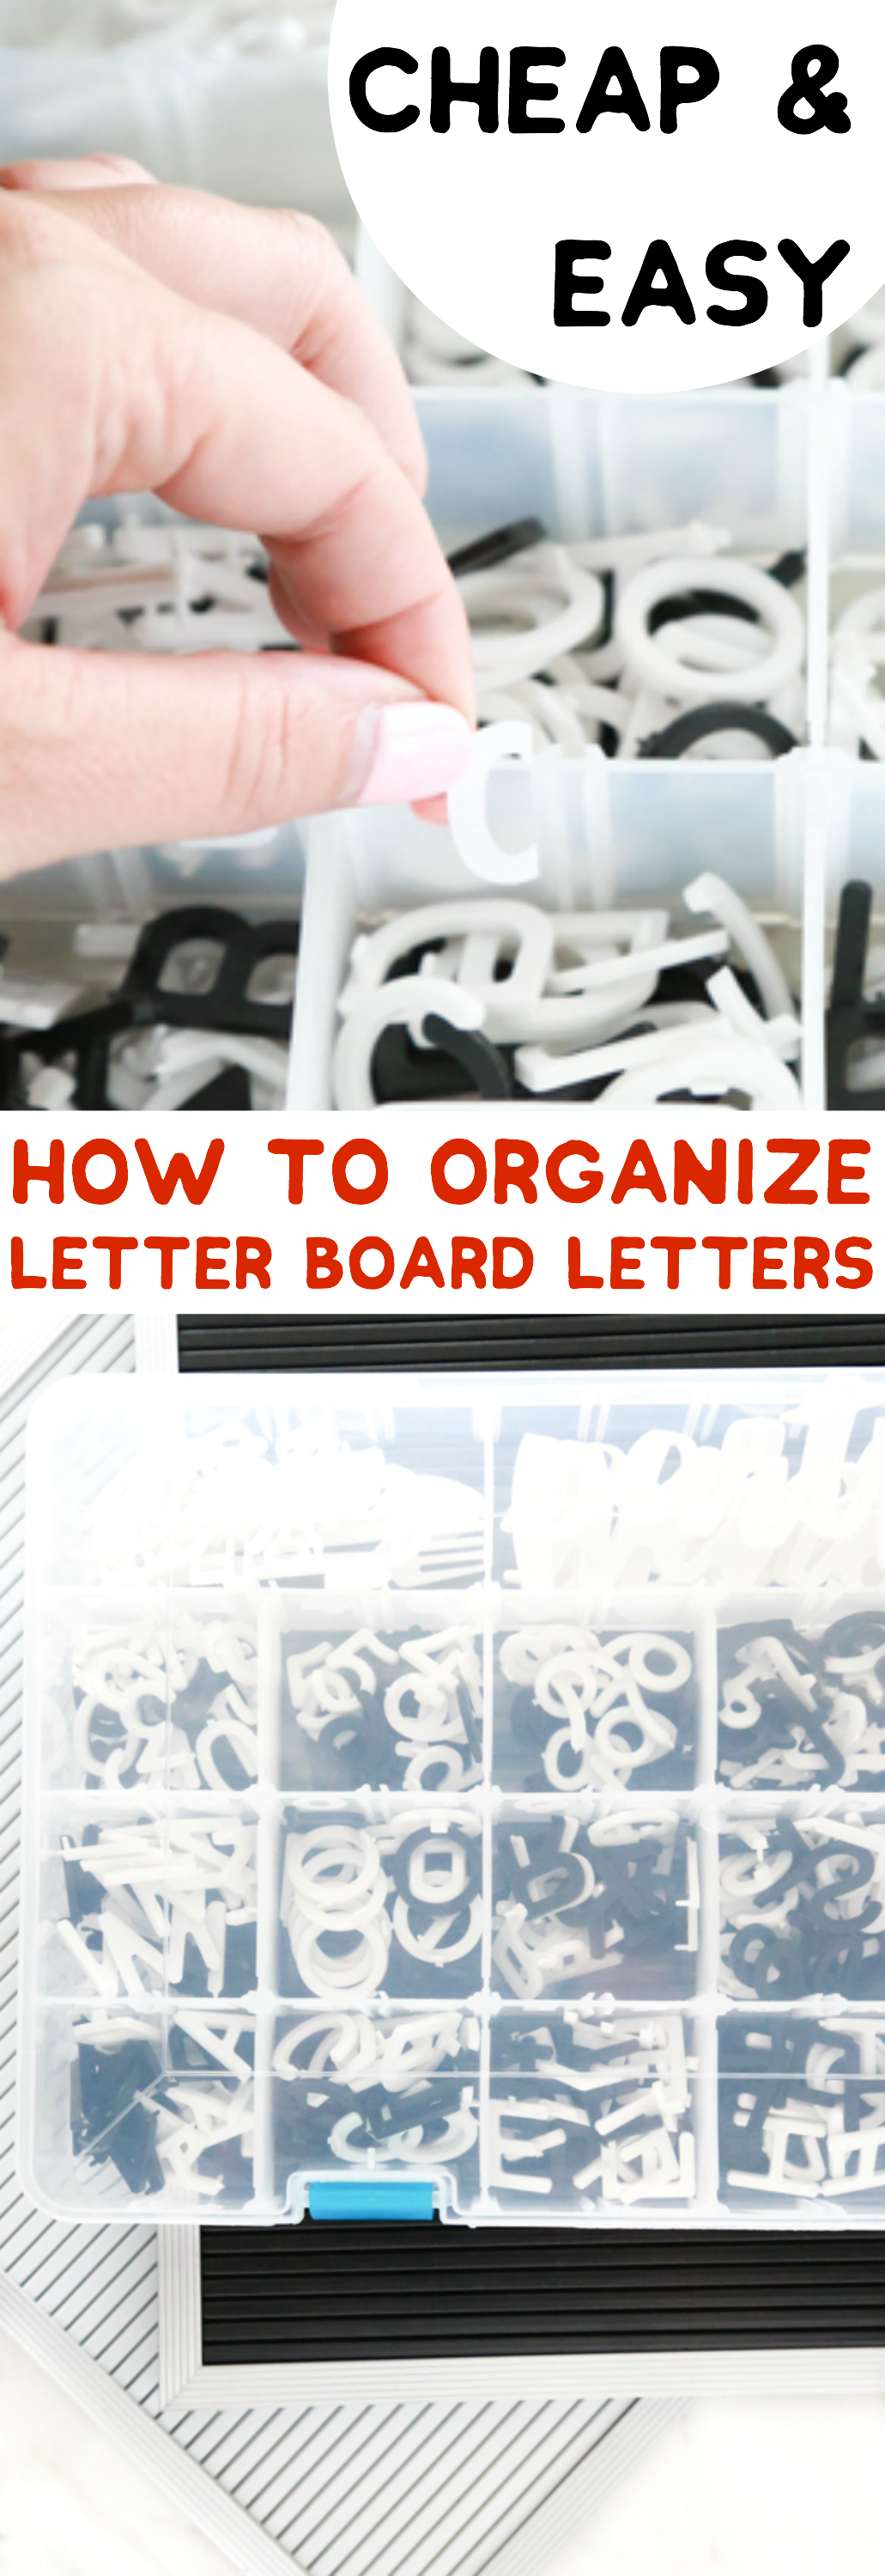 Letter boards are a lot of fun to use, but organizing all those letters is a completely different story. I wanted to share one way I've learned how to organize letter board letters.